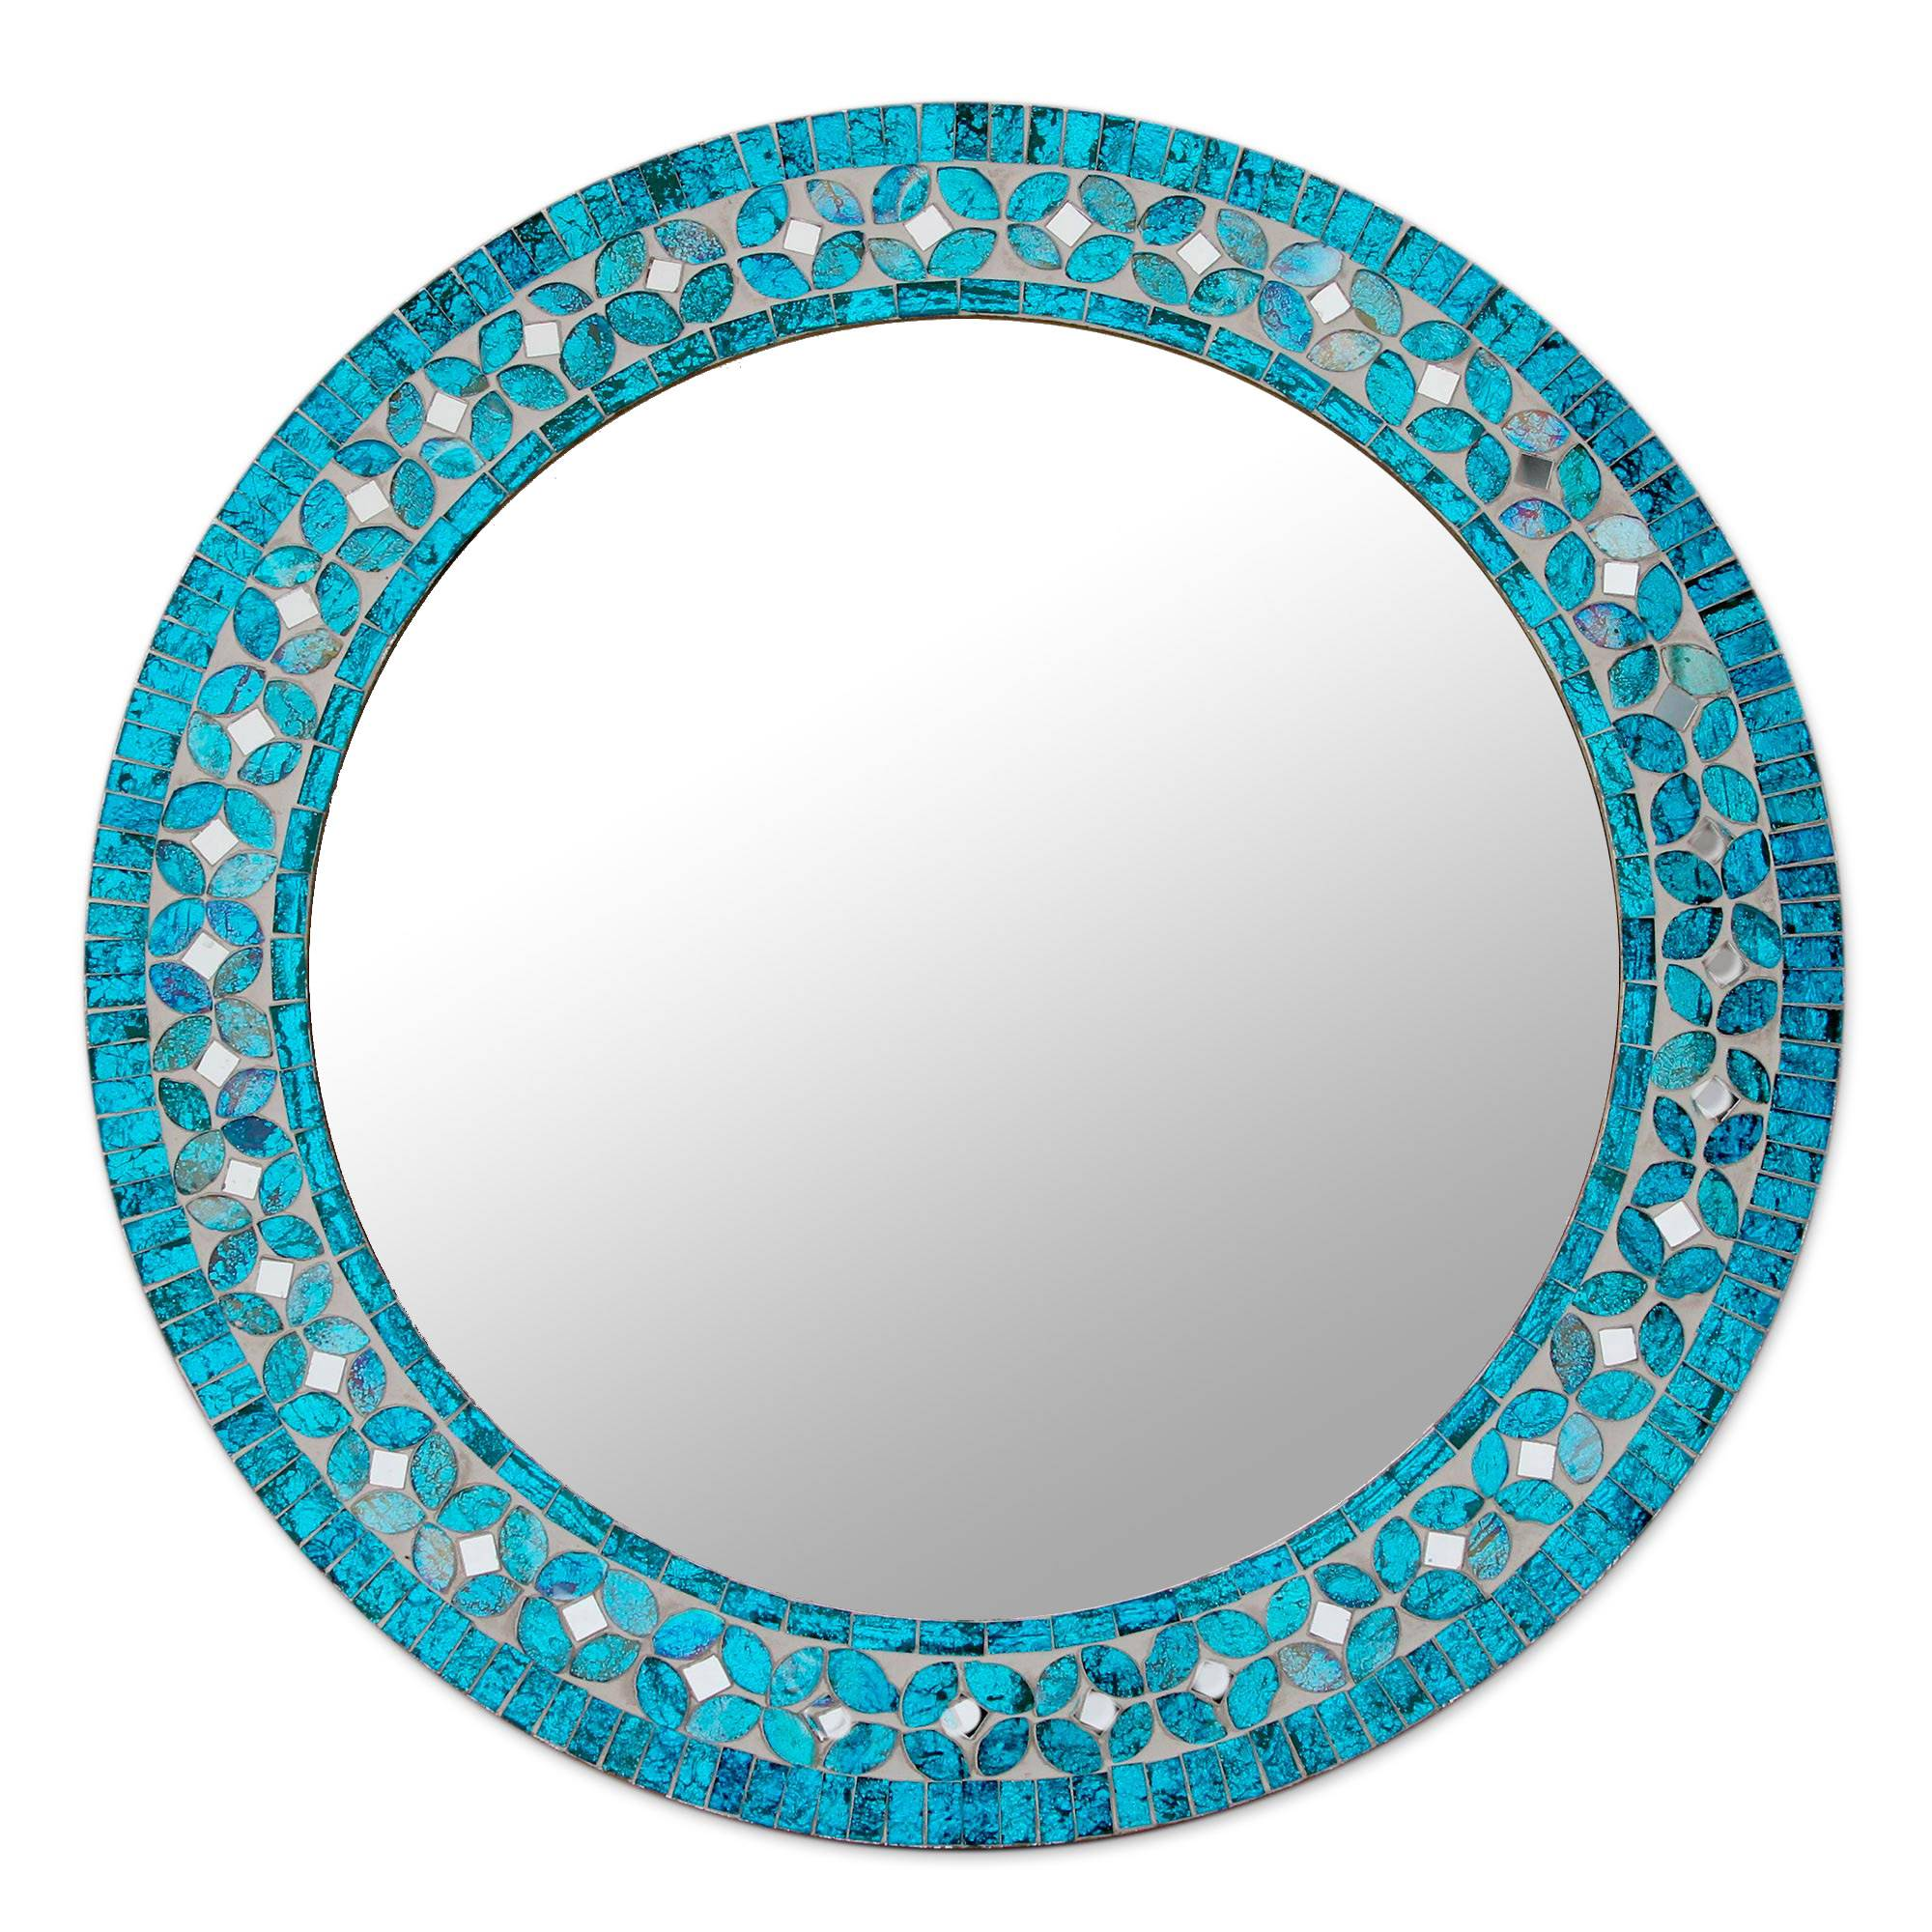 Unicef Market Round Turquoise Glass Mosaic Tile Mirror With Flower Motif Turquoise Blossom